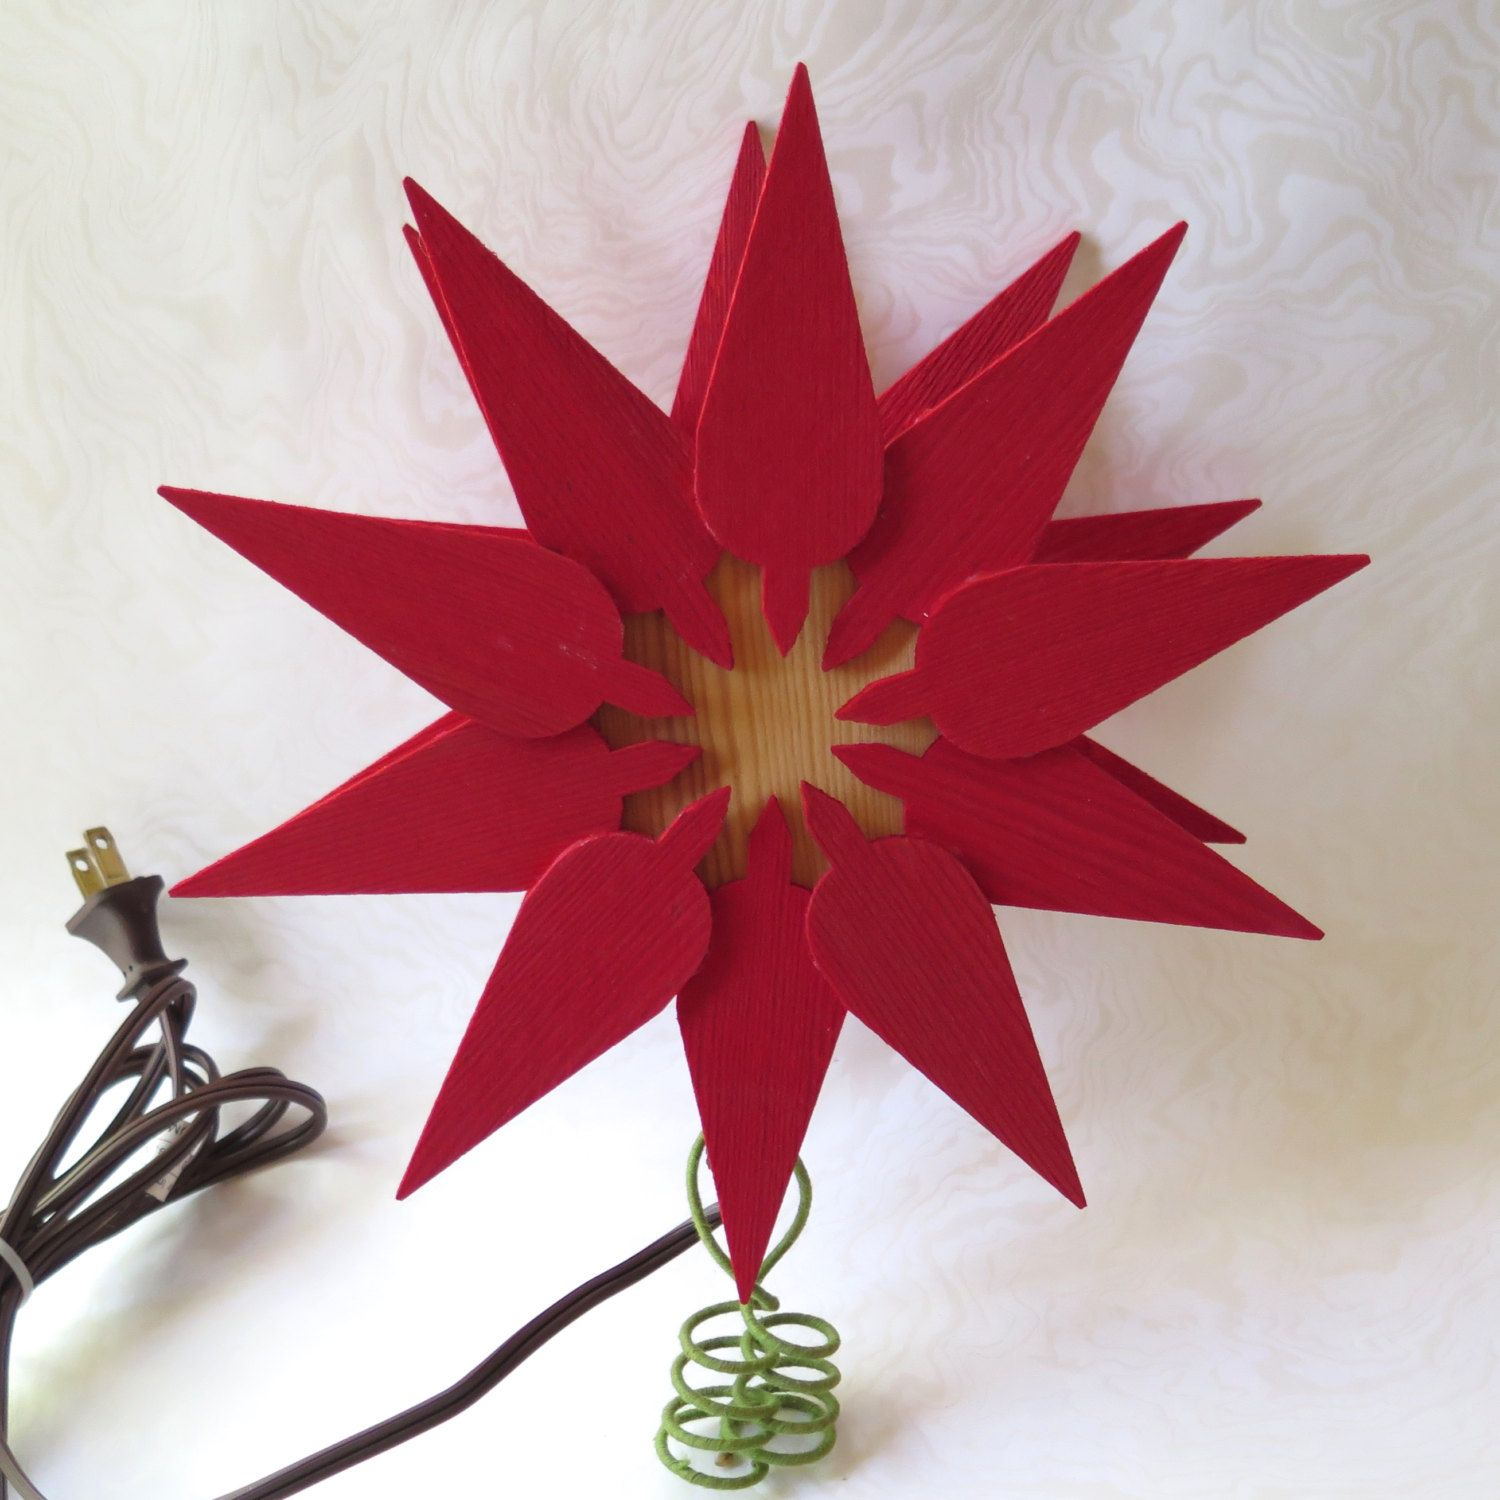 Christmas Tree Sweden: Scandinavian Christmas Tree Topper Poinsettia Red Pine